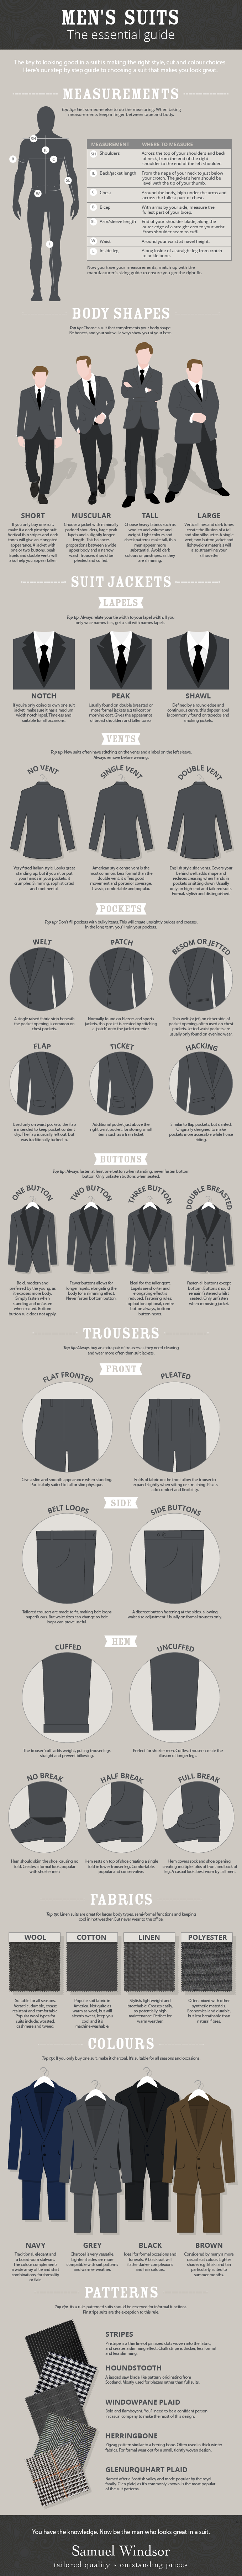 Learn how to choose the best suit for you, with the Samuel Windsor essential guide to mens suits. Get the knowledge. Be the man who looks great in a suit.